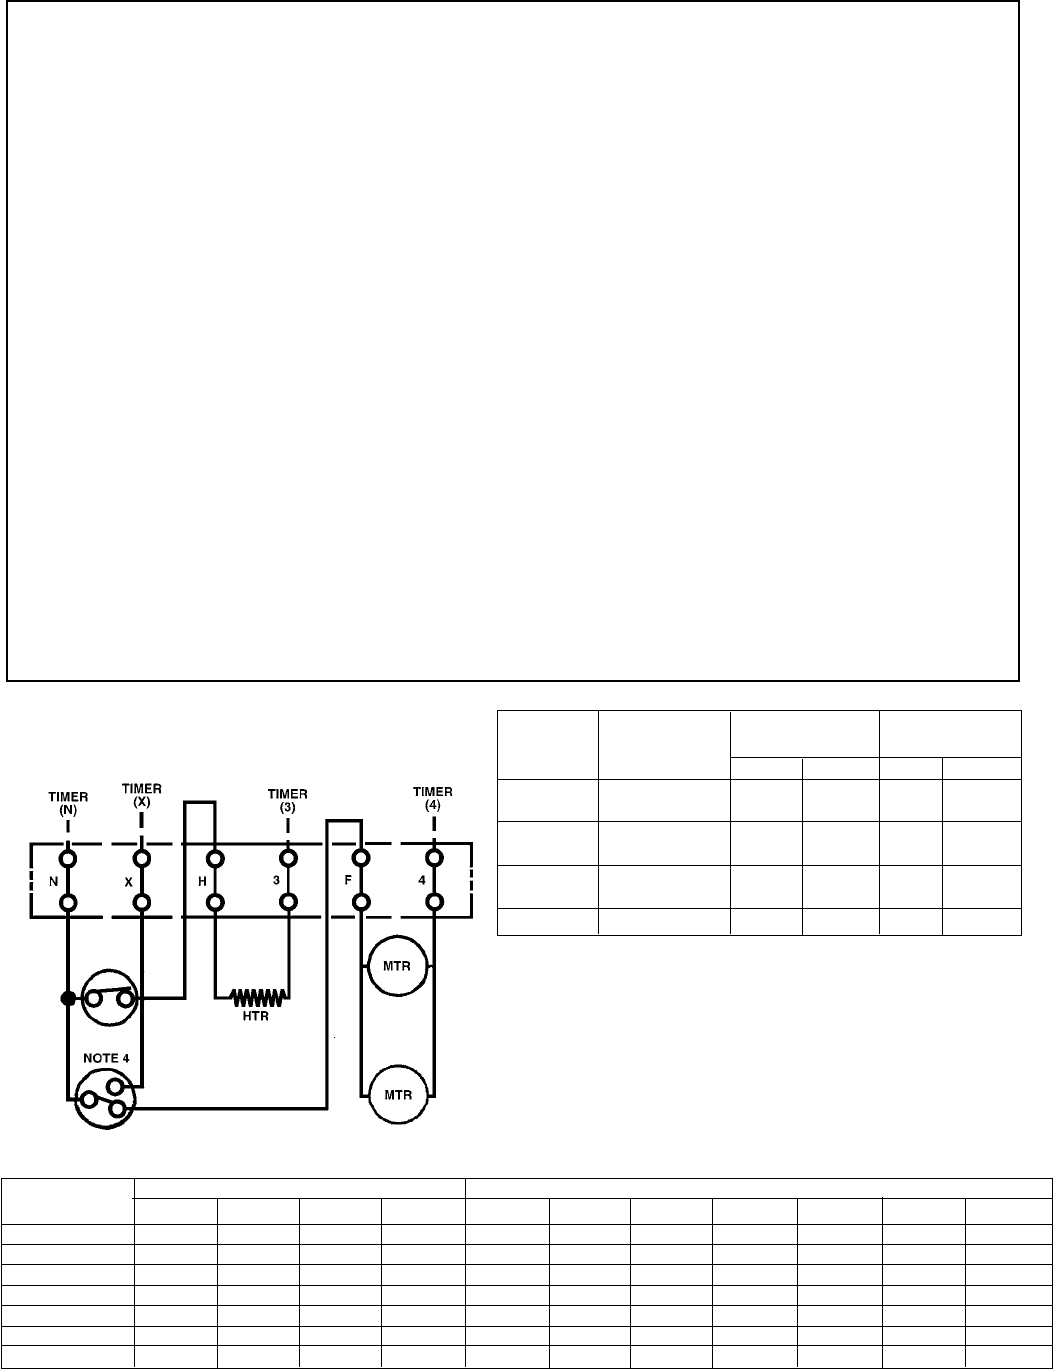 √ 3 Wire Defrost Termination Switch Wiring Diagram Download Wiring Diagram Download on hvac diagrams, transformer diagrams, smart car diagrams, battery diagrams, internet of things diagrams, troubleshooting diagrams, pinout diagrams, led circuit diagrams, gmc fuse box diagrams, electronic circuit diagrams, engine diagrams, friendship bracelet diagrams, series and parallel circuits diagrams, sincgars radio configurations diagrams, motor diagrams, lighting diagrams, switch diagrams, electrical diagrams, honda motorcycle repair diagrams,